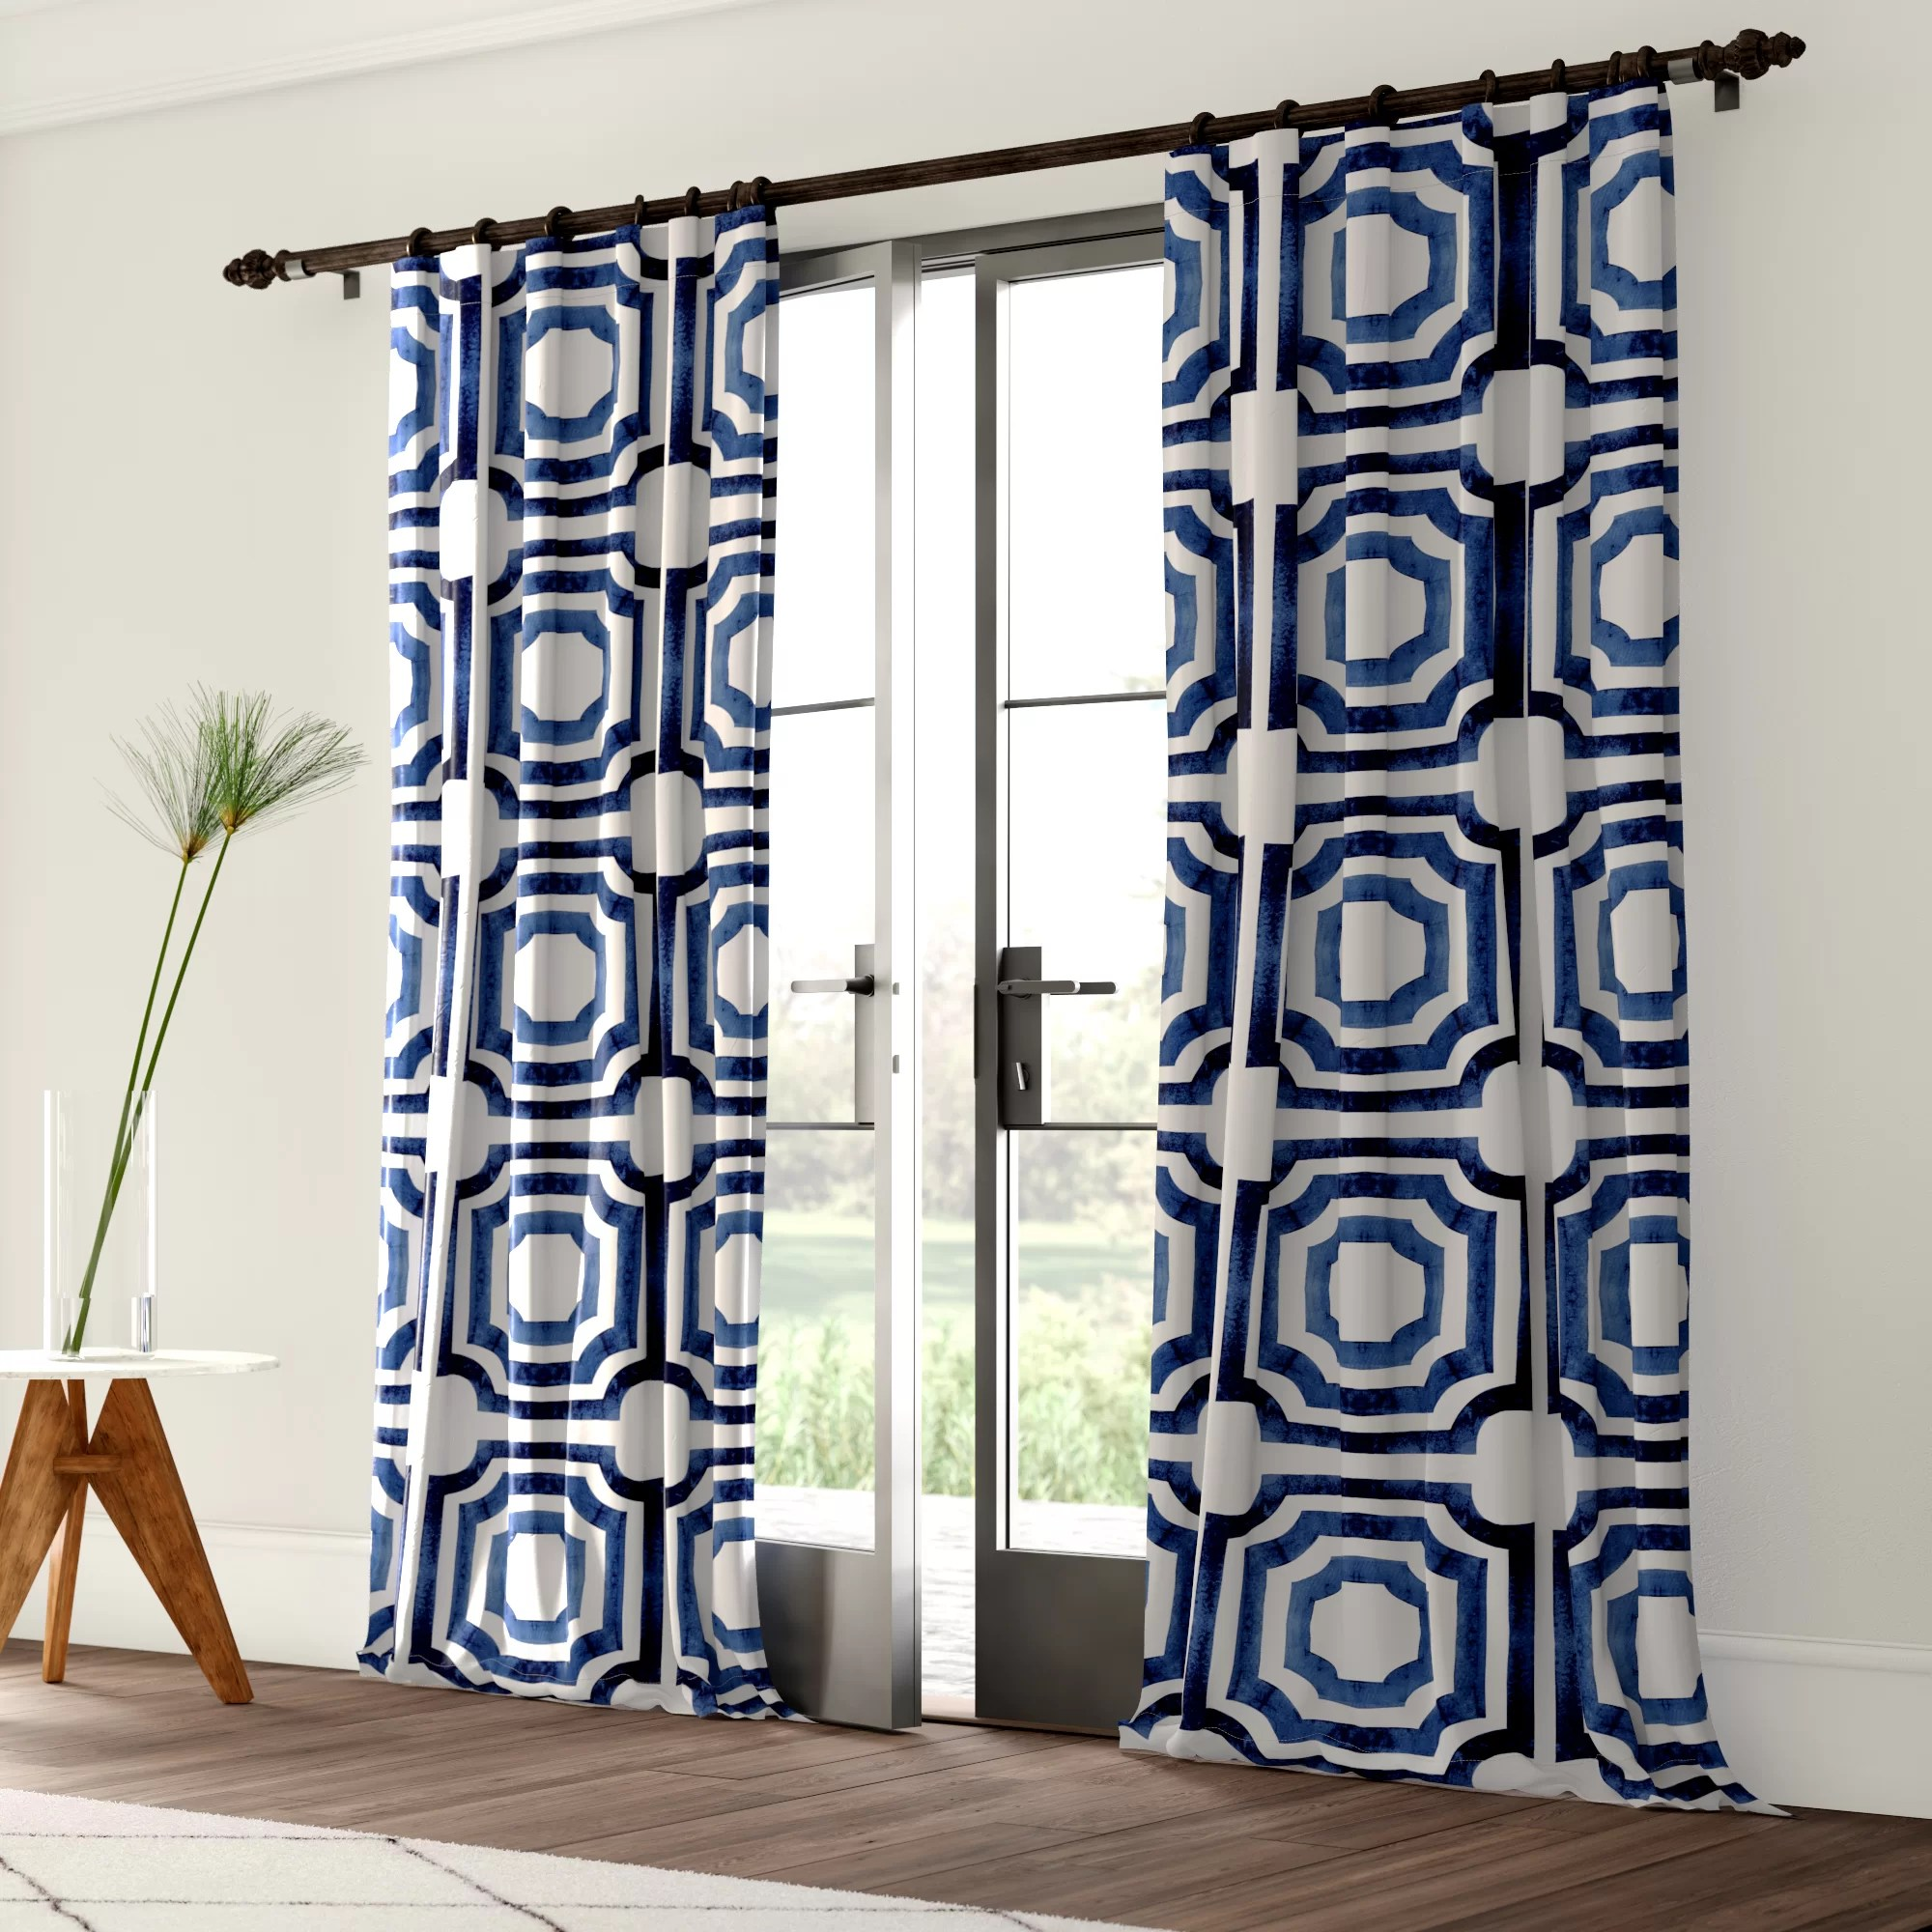 104 Inch Curtains Donato Geometric Printed Cotton Room Darkening Rod Pocket Single Curtain Panel